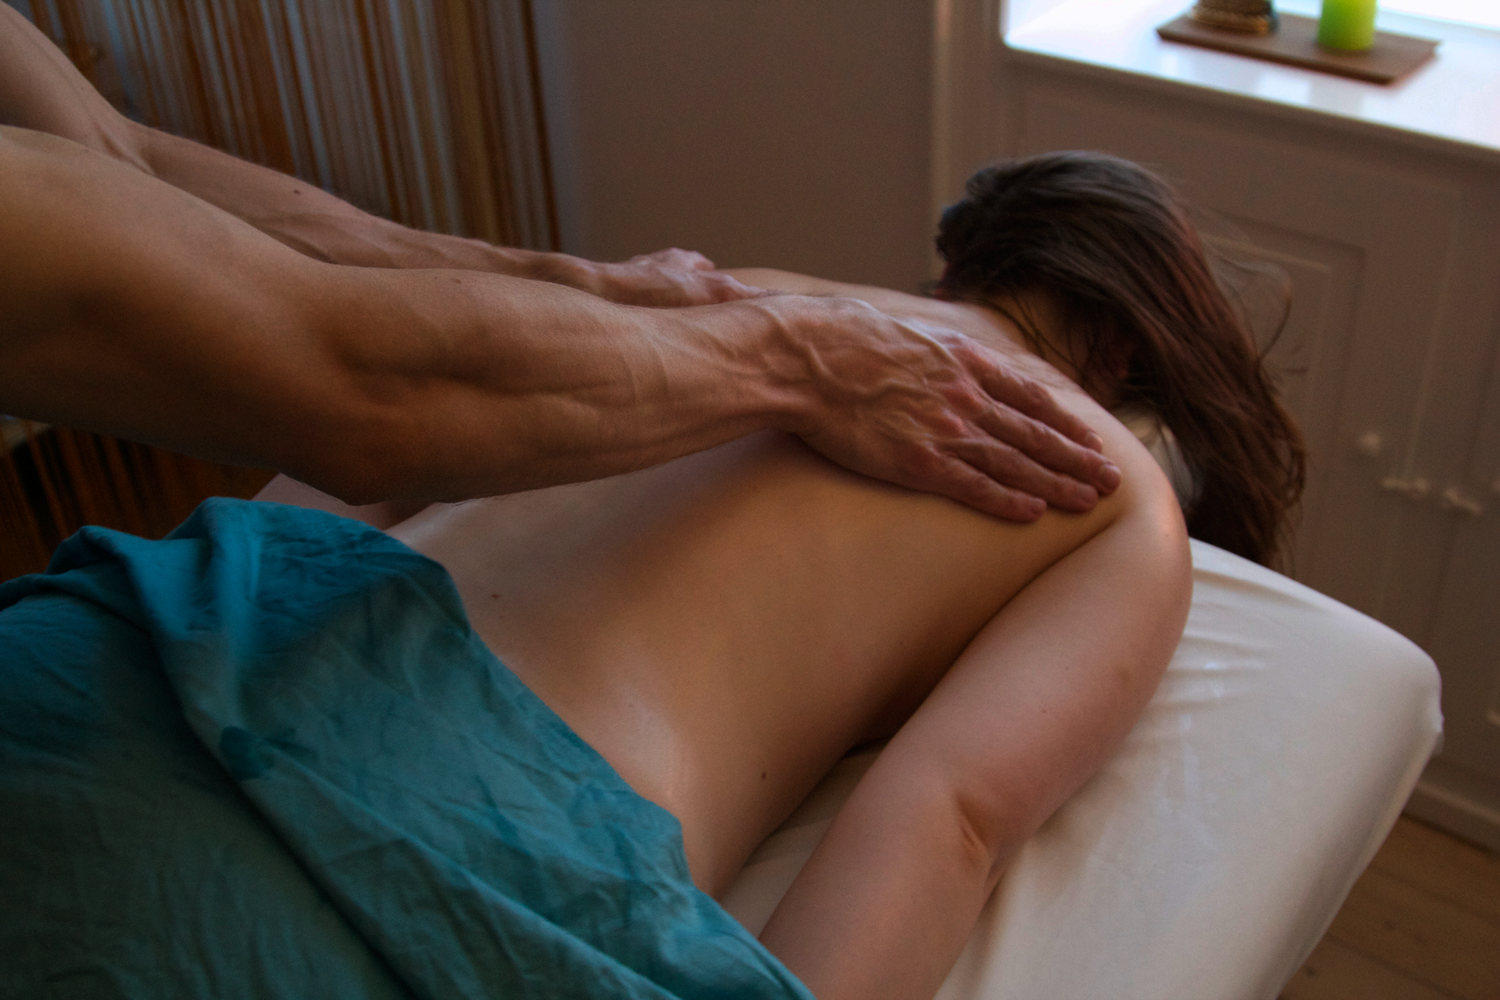 shemale dk tantric massage houston